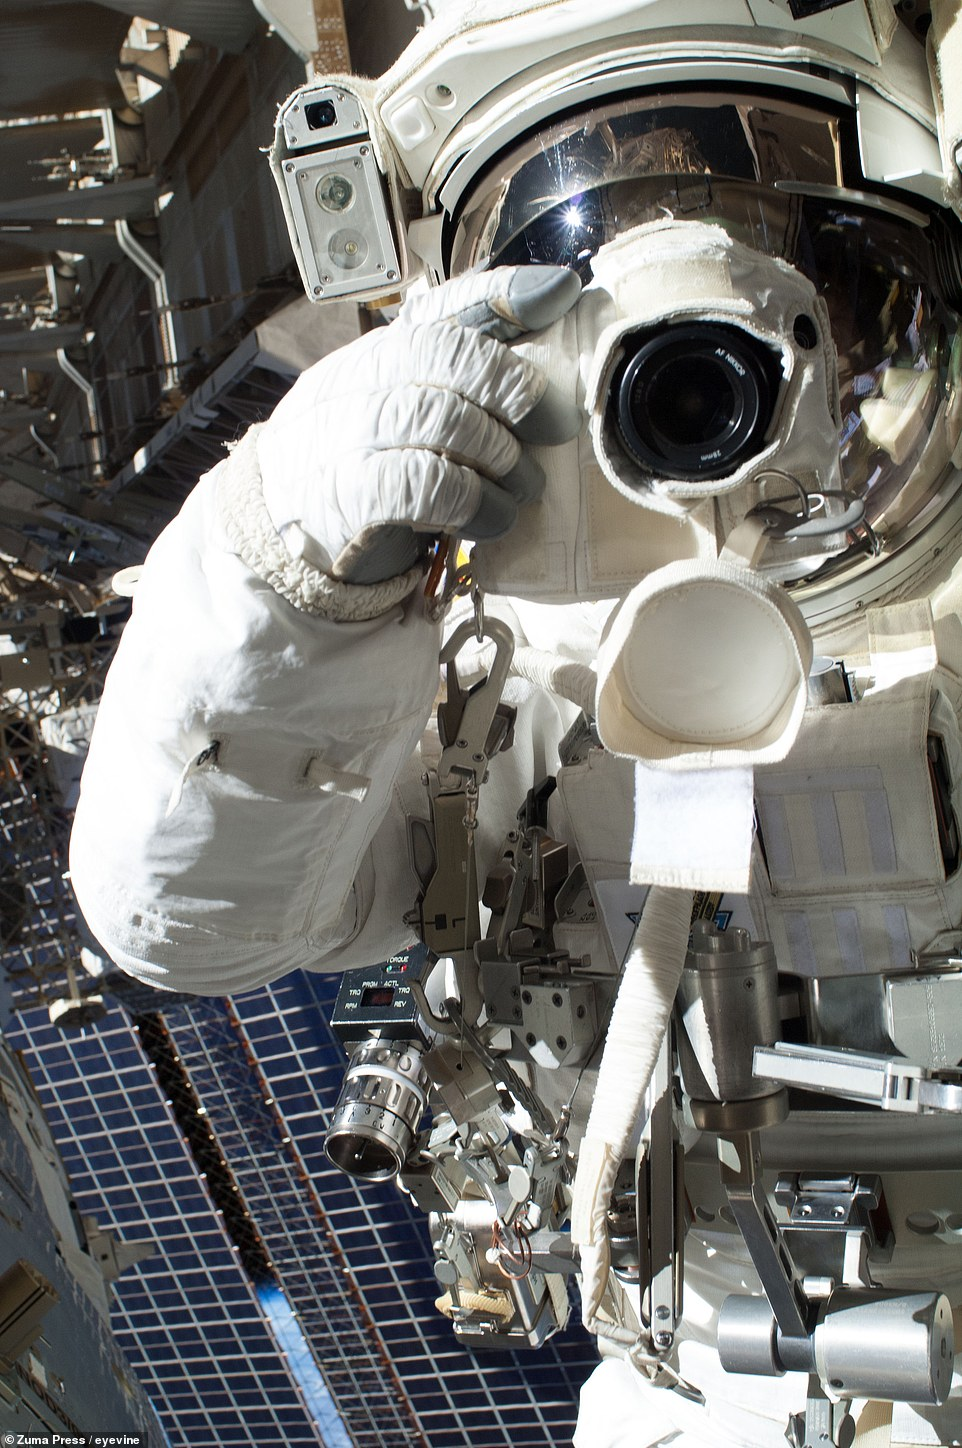 Chris Cassidy of NASA snaps a selfie with a digital camera on July 16, 2013, before his spacewalk was cut short after barely more than an hour. Fellow astronaut Luca Parmitano (who is out of the frame) had reported water floating behind his head within his helmet. Although the water presented no immediate risk, Mission Control elected to end the EVA early.